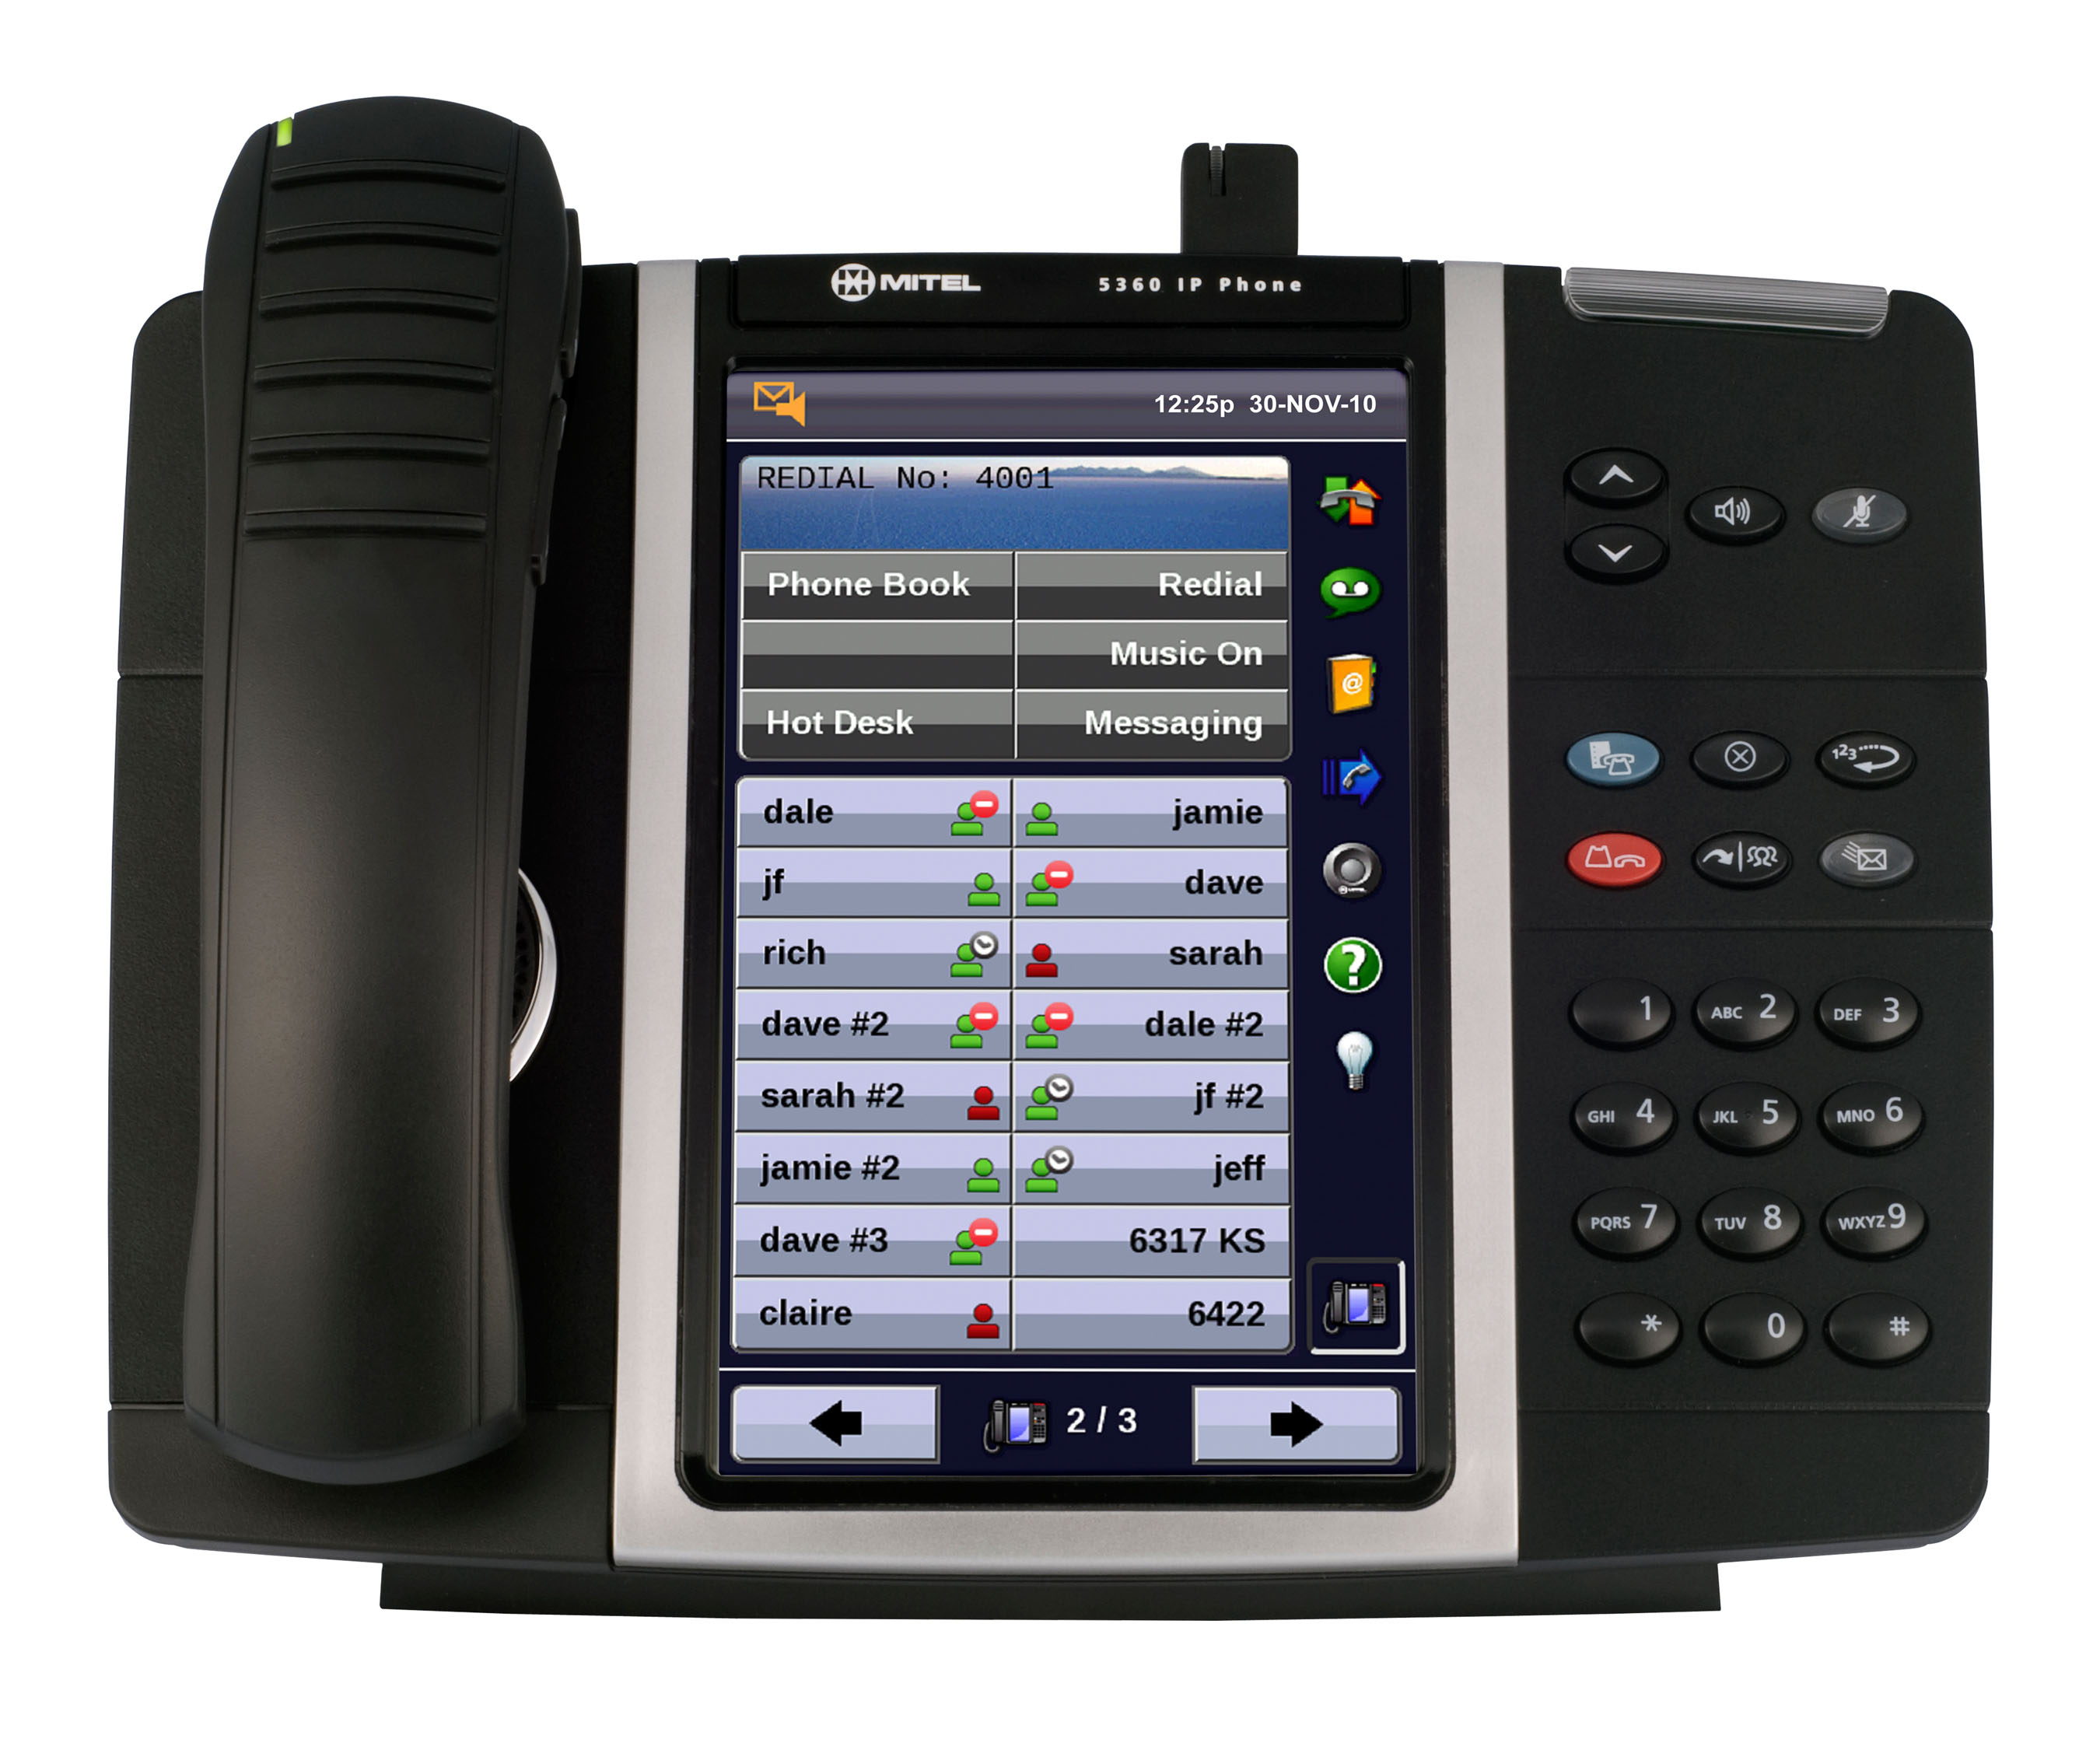 Mitel Model 5360 Color Touchscreen IP PBX Telephone